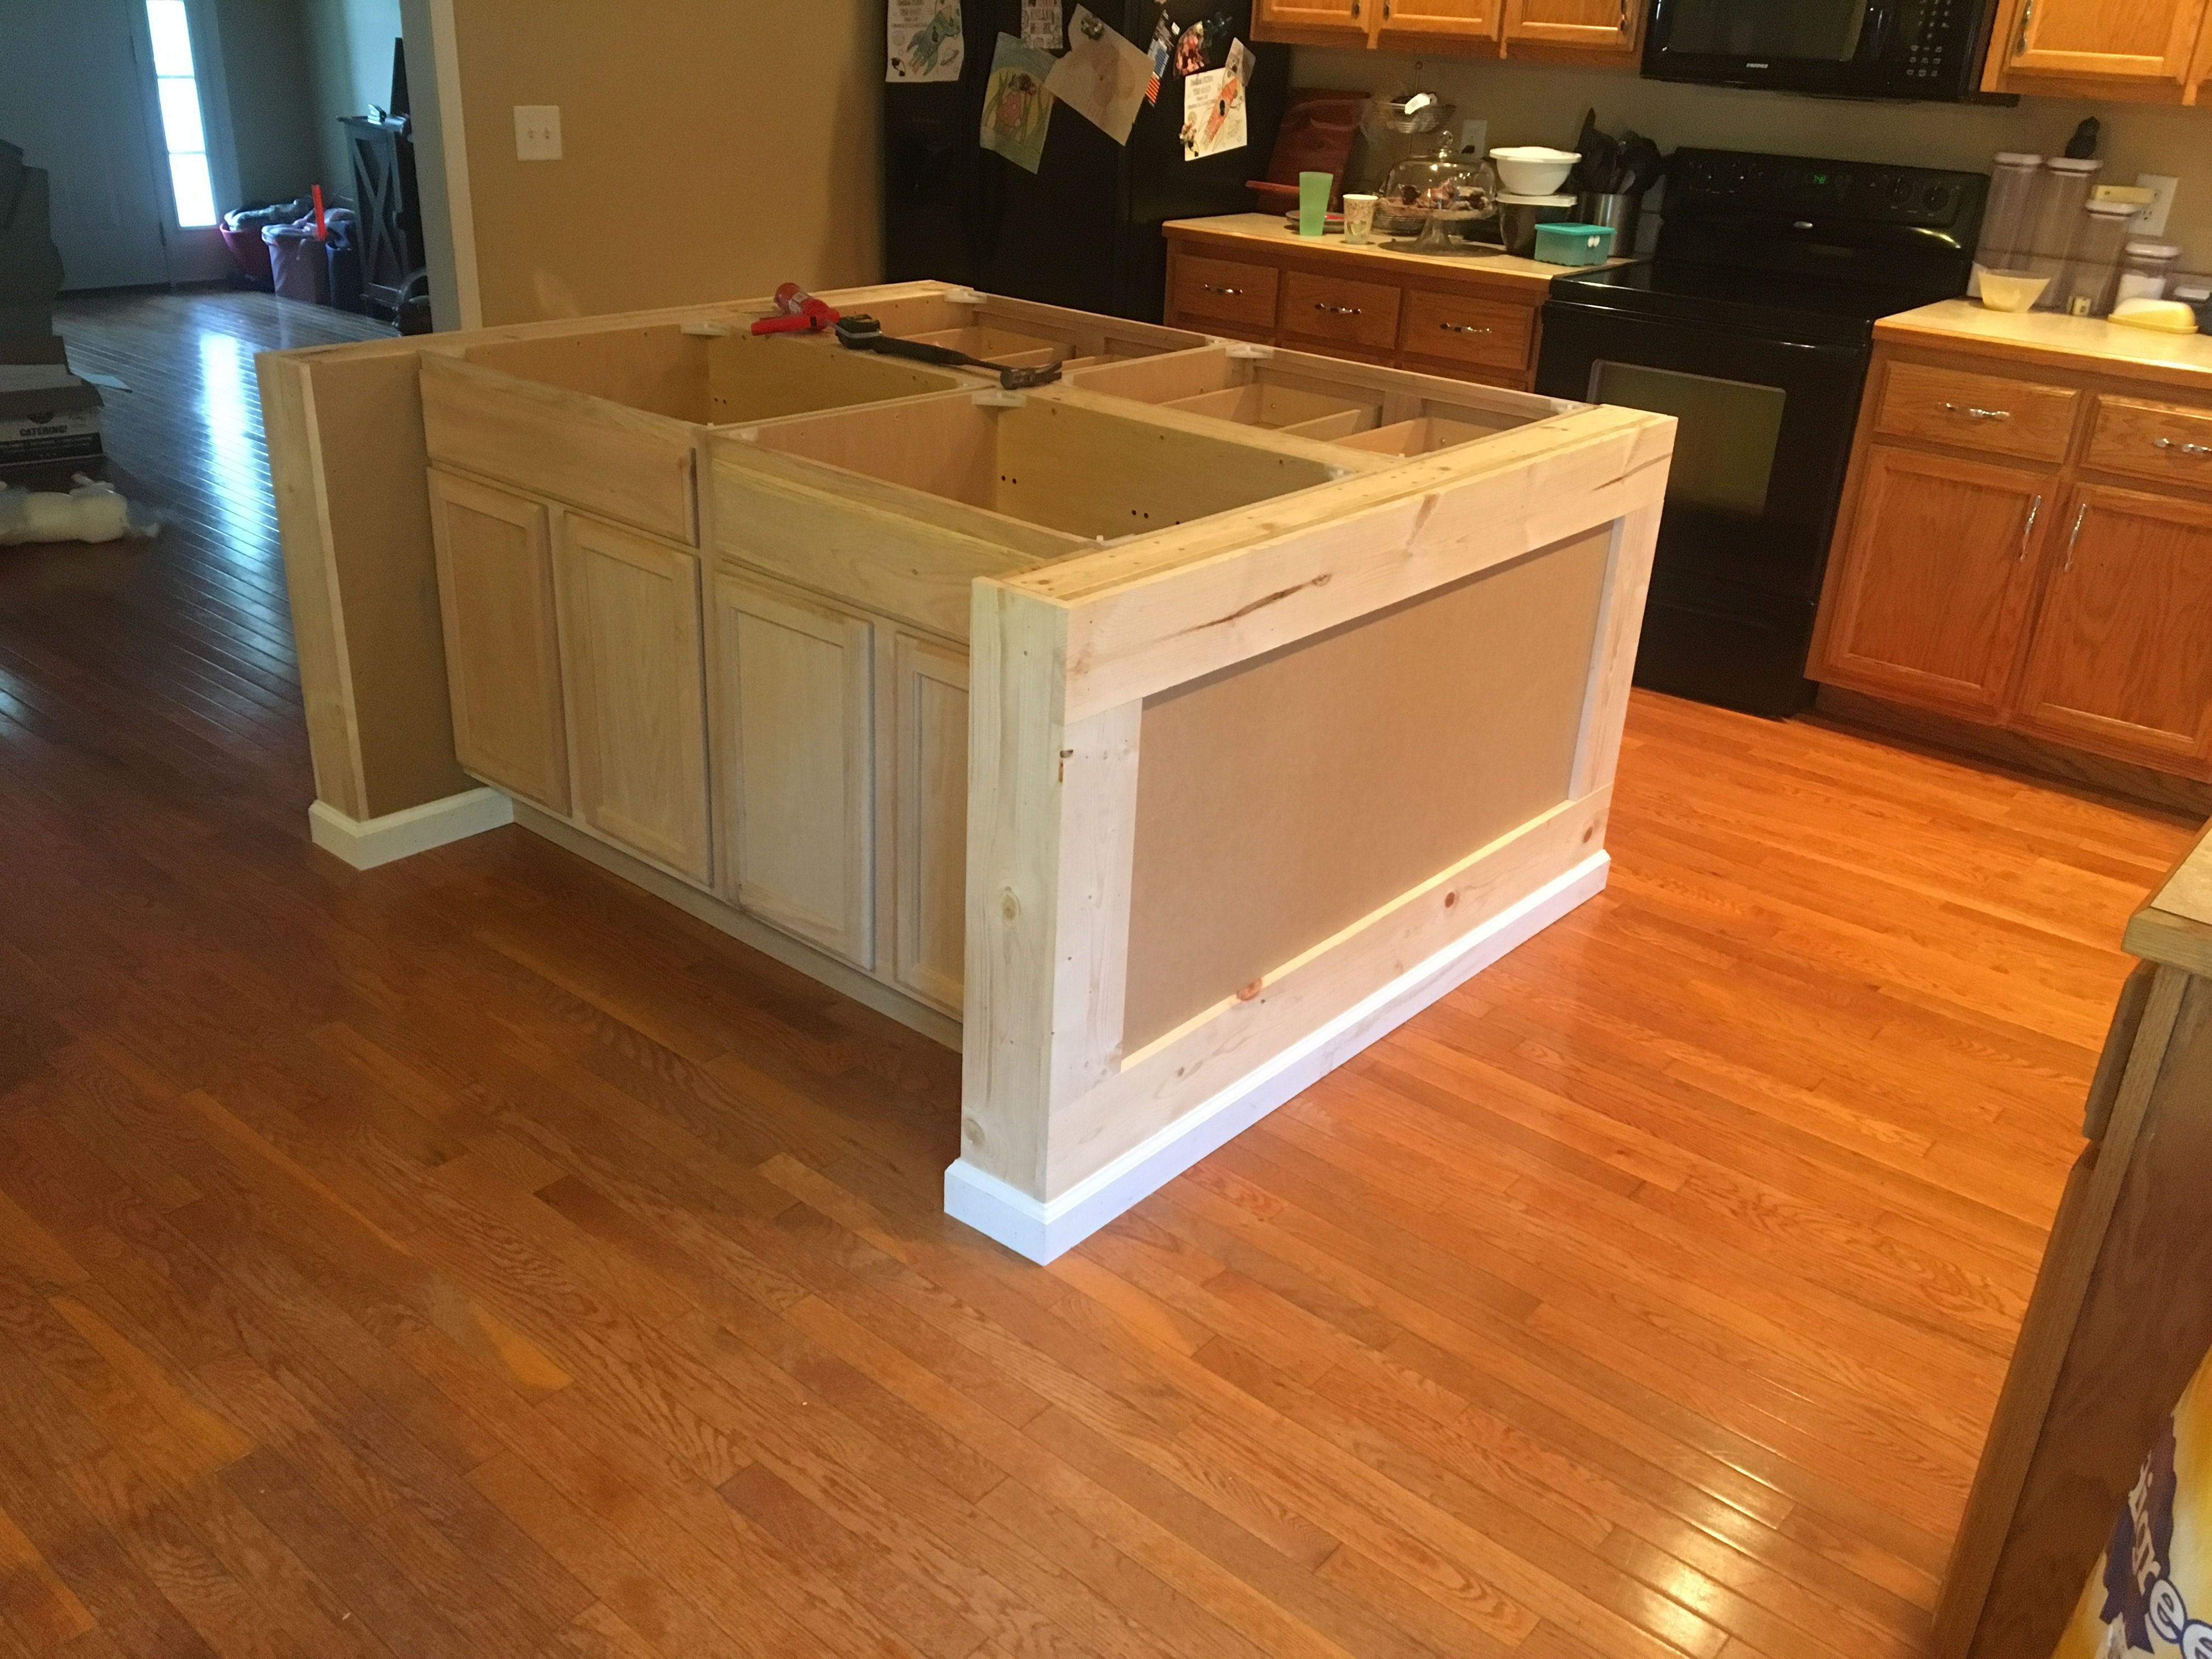 Discover Portable Kitchen Island With Breakfast Bar Only In Shopy Home Design Building A Kitchen Kitchen Island Using Stock Cabinets Kitchen Island Plans